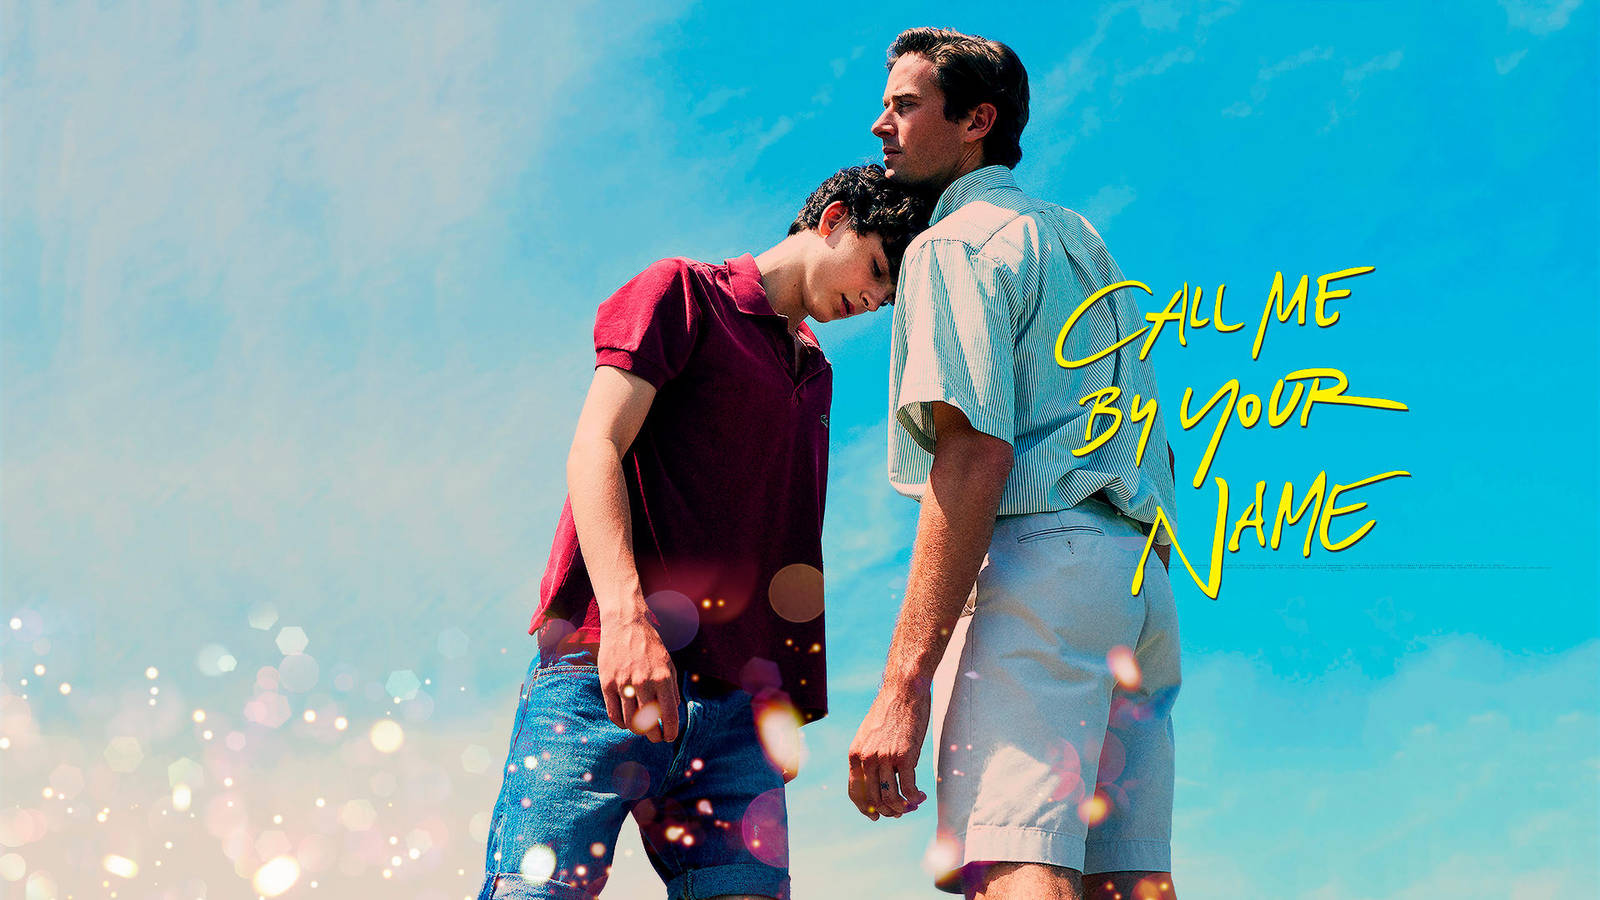 Call Me By Your Name Wallpaper By Wojo134 On Deviantart